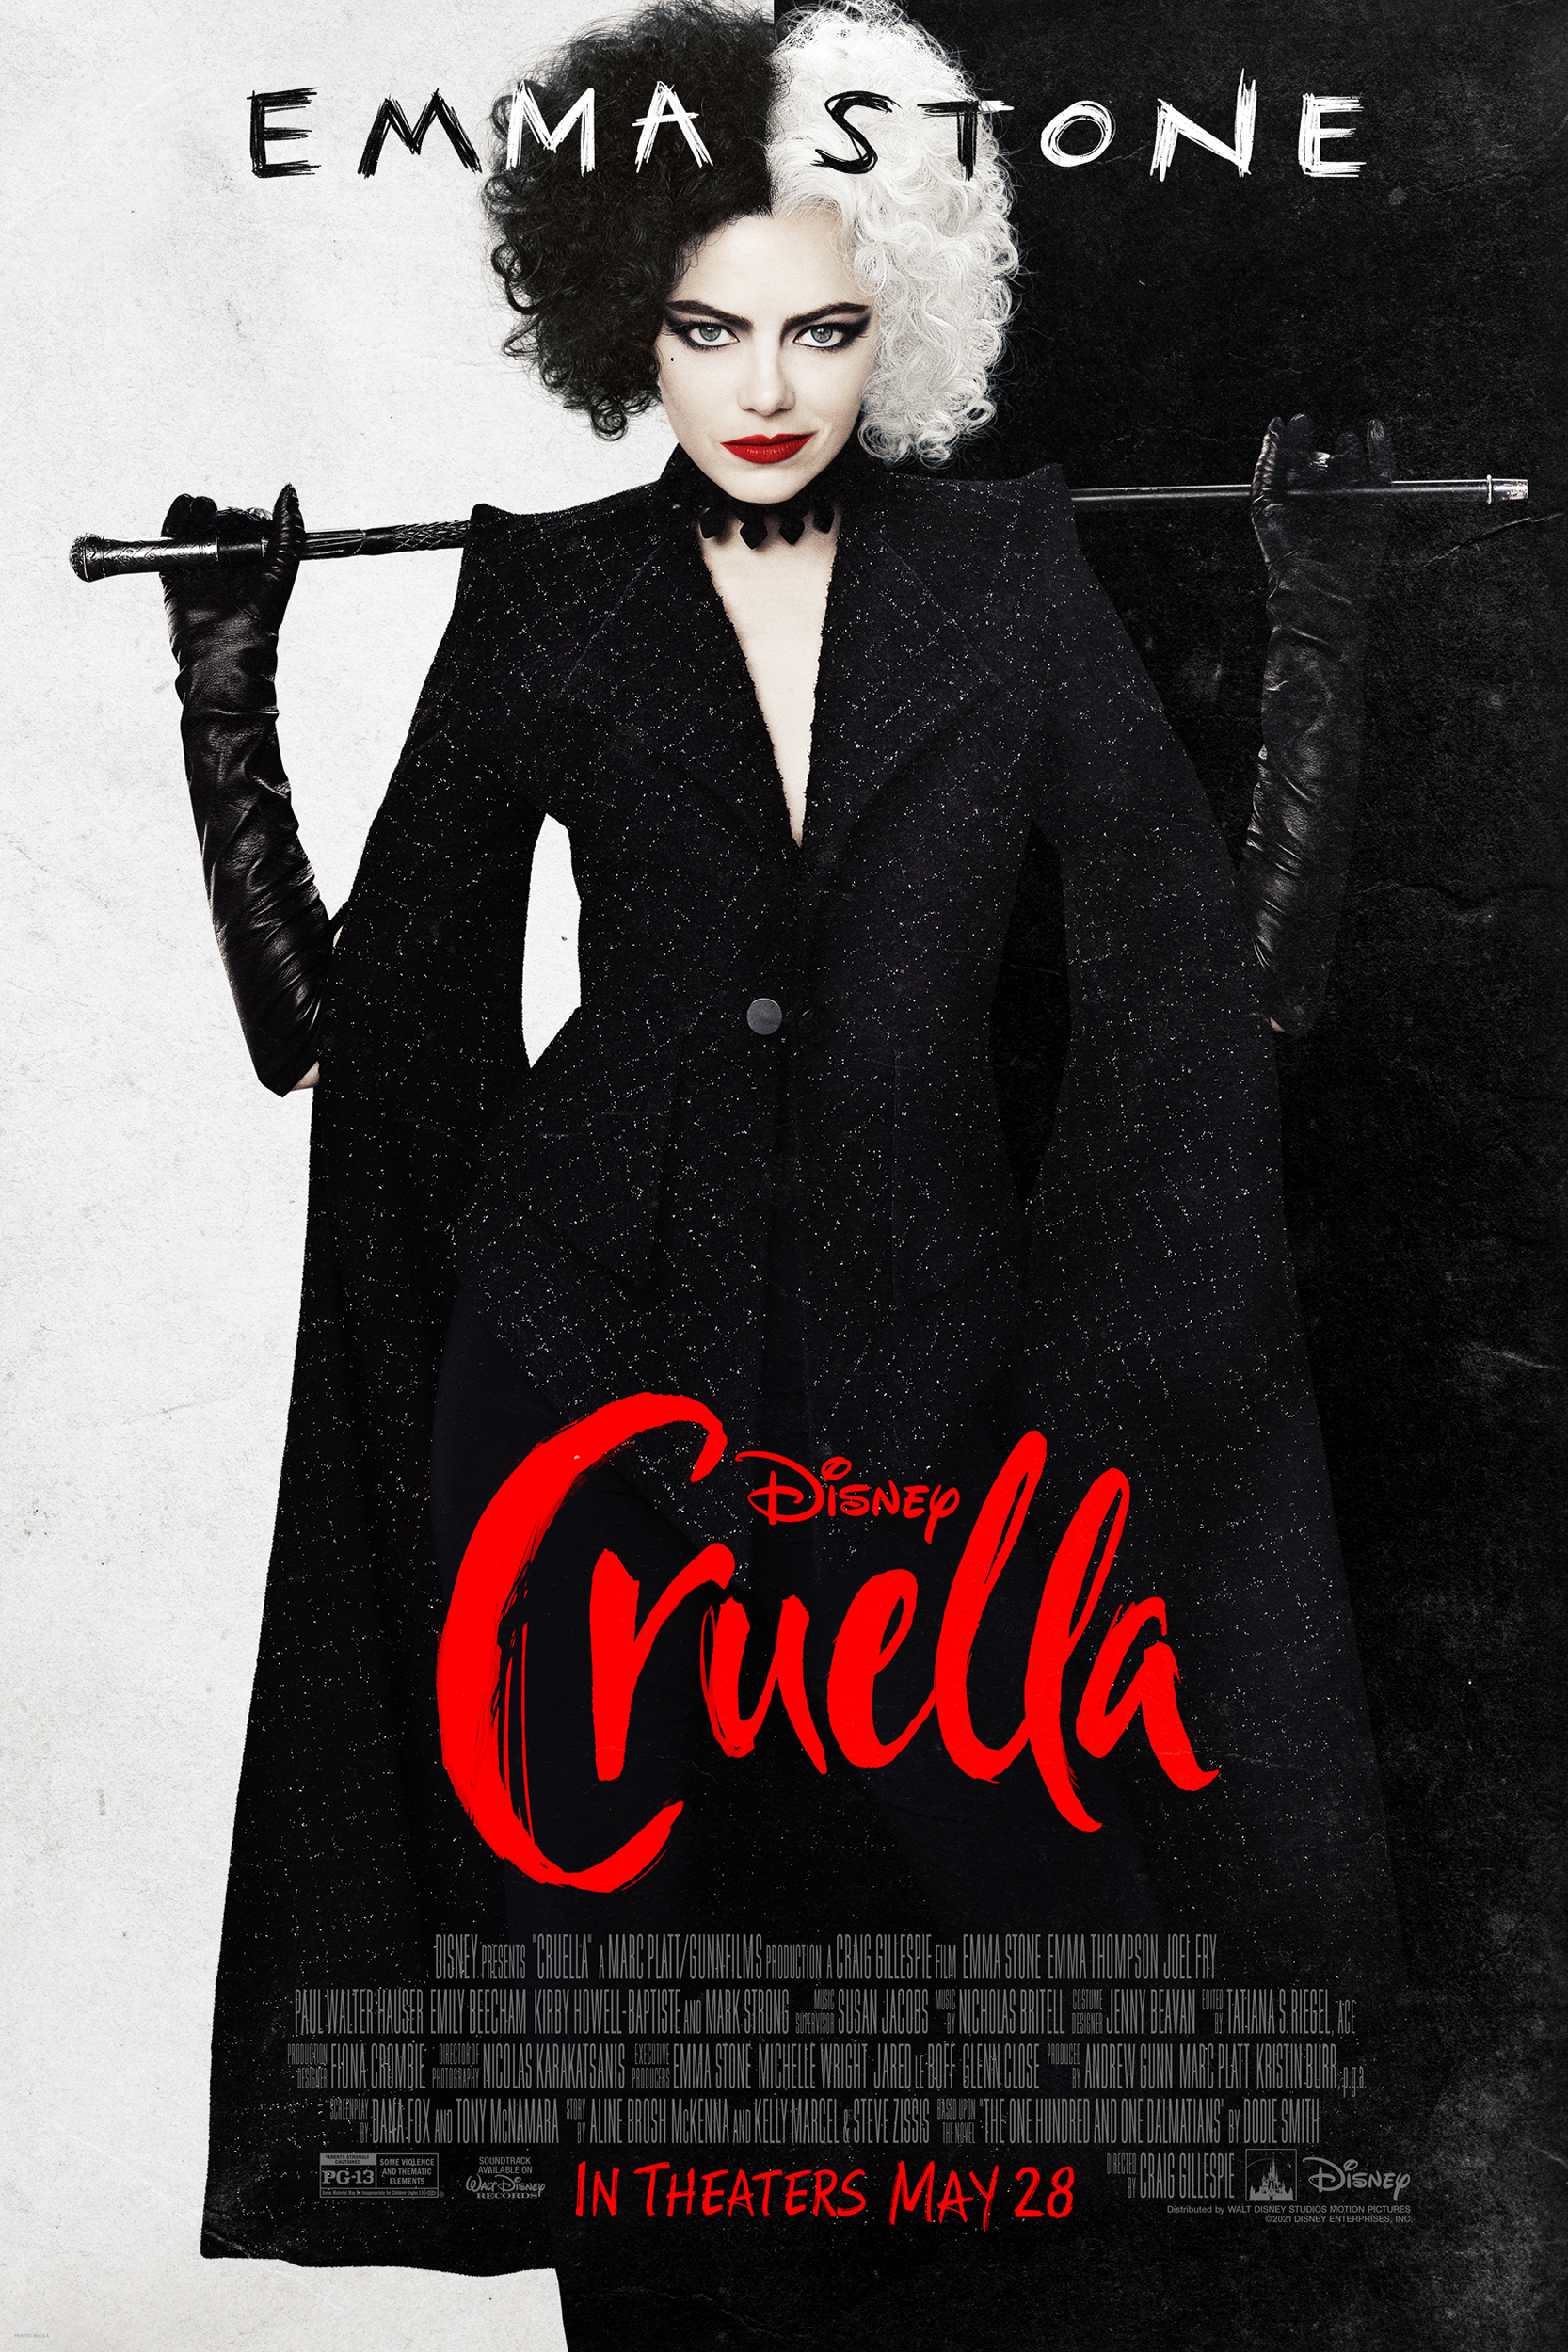 Still of Cruella